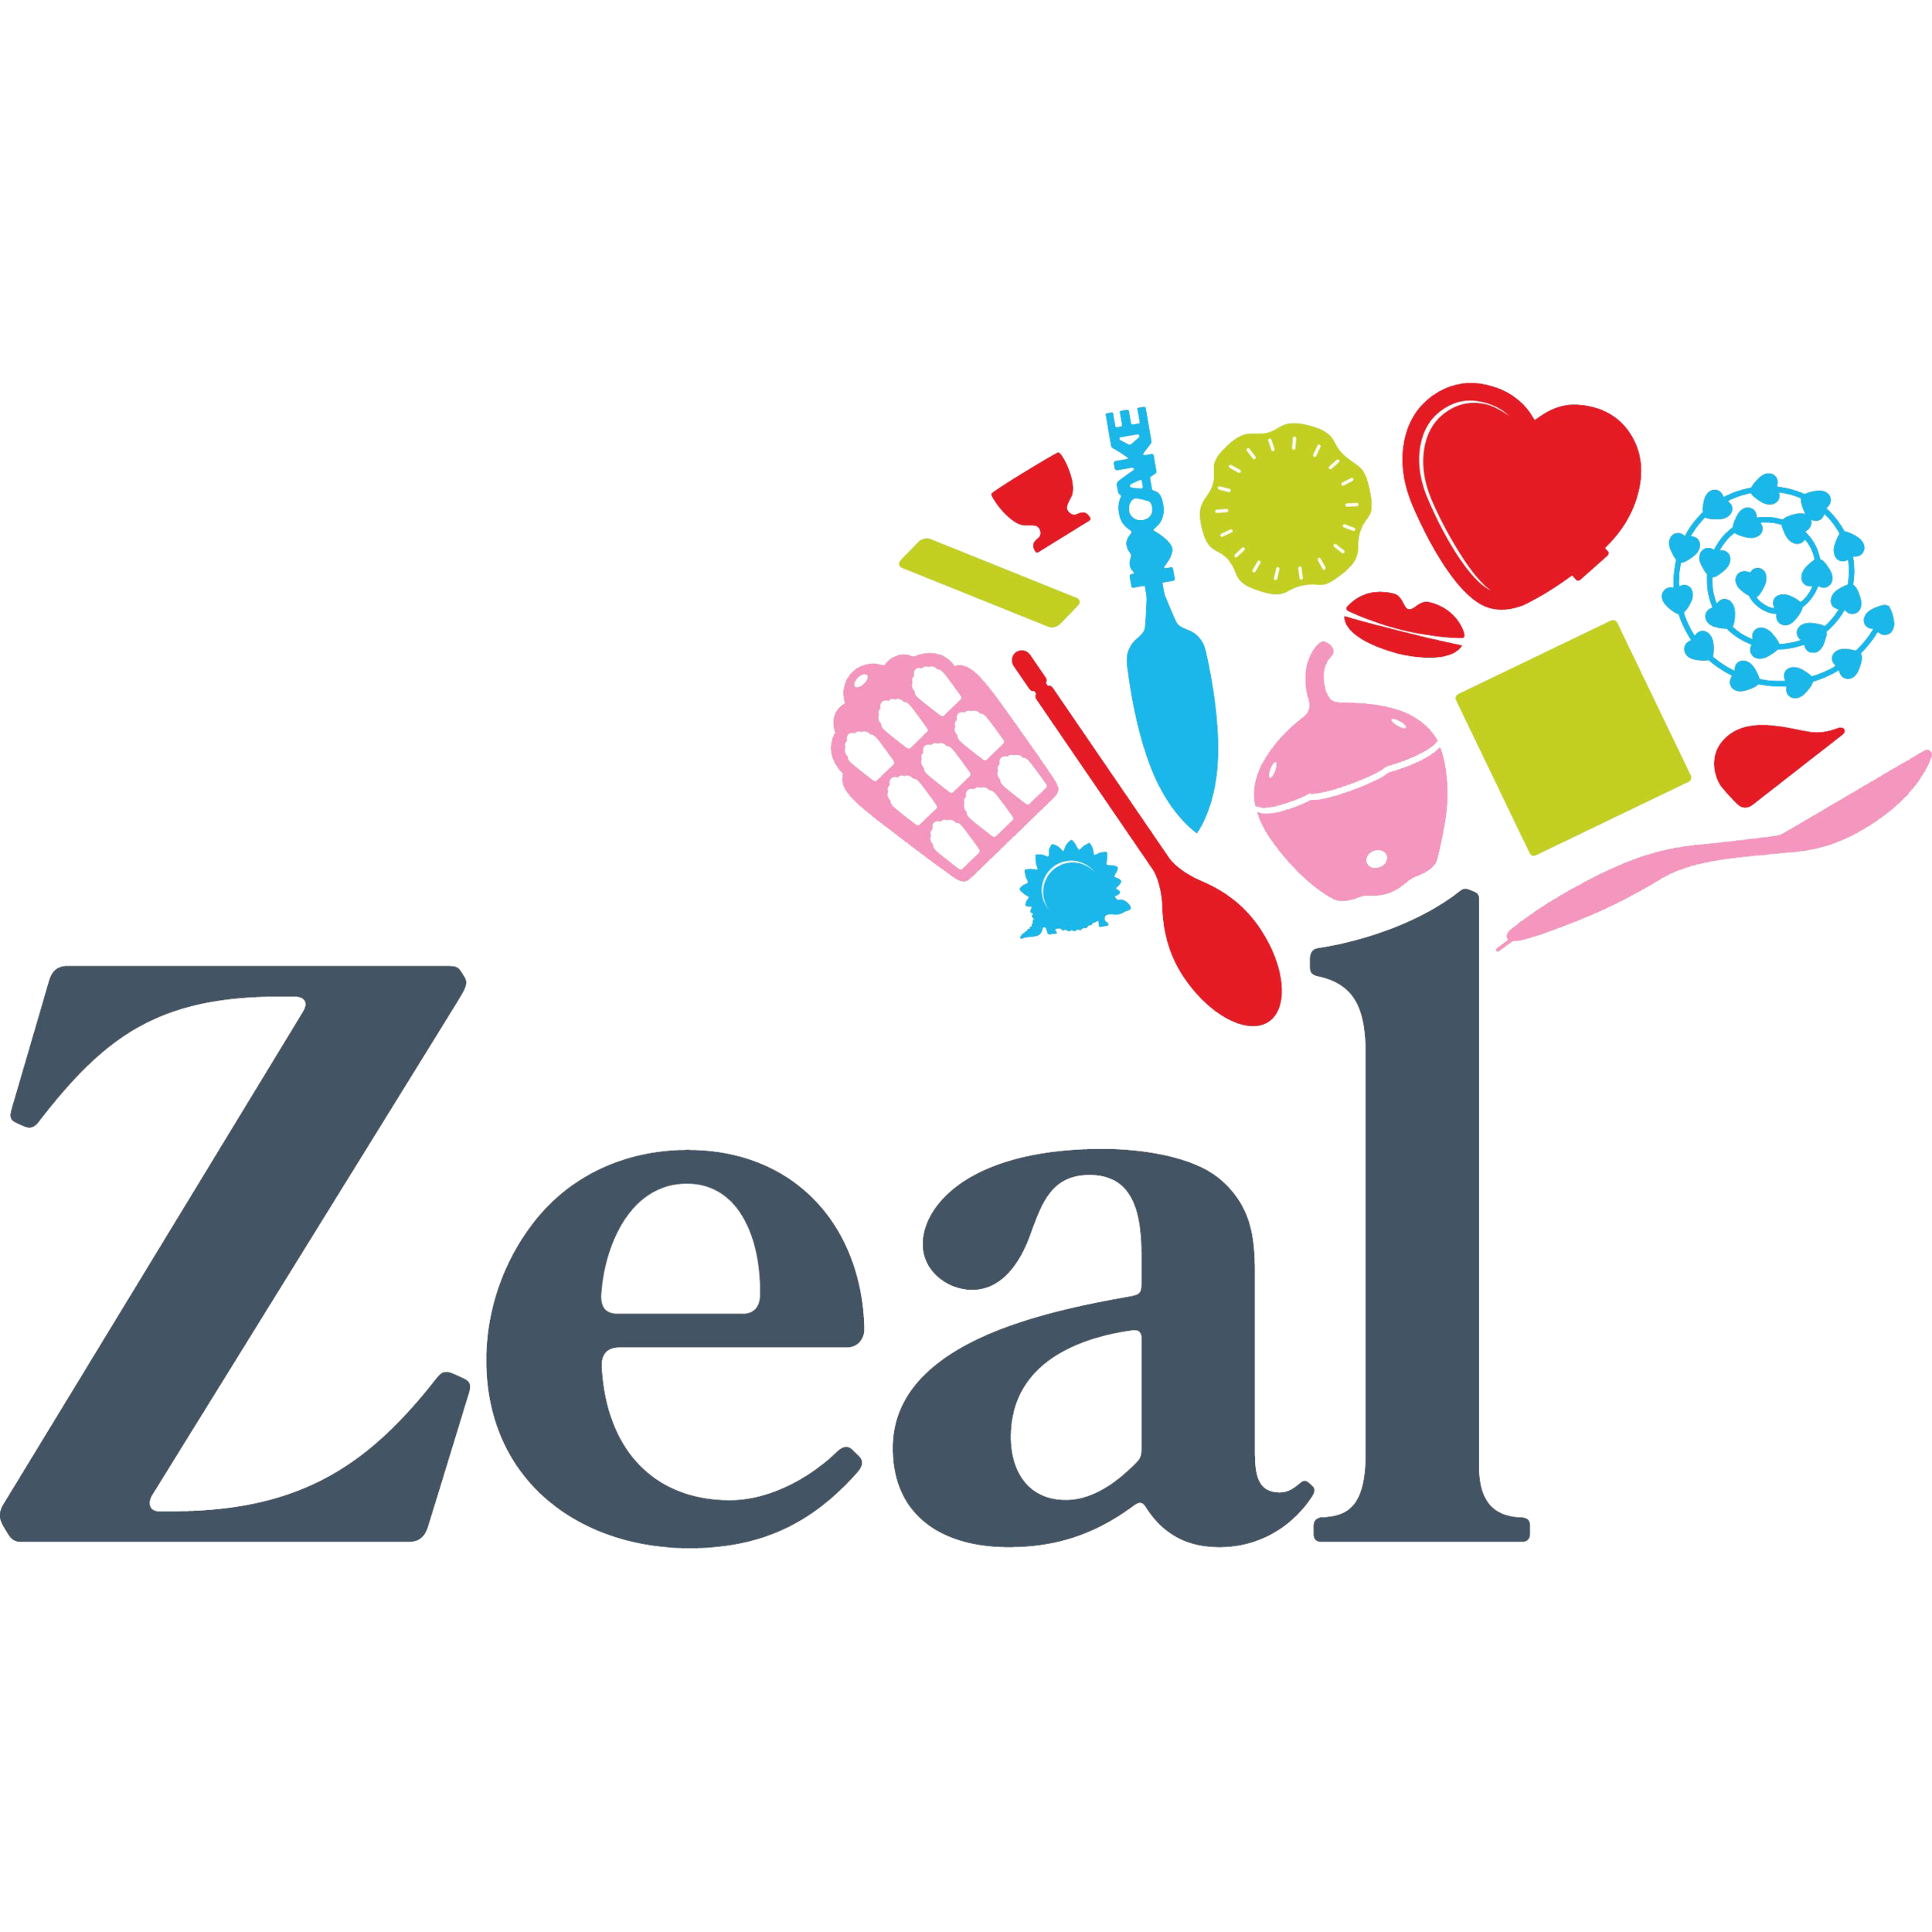 zeal-logo_grey_colour-tree.png